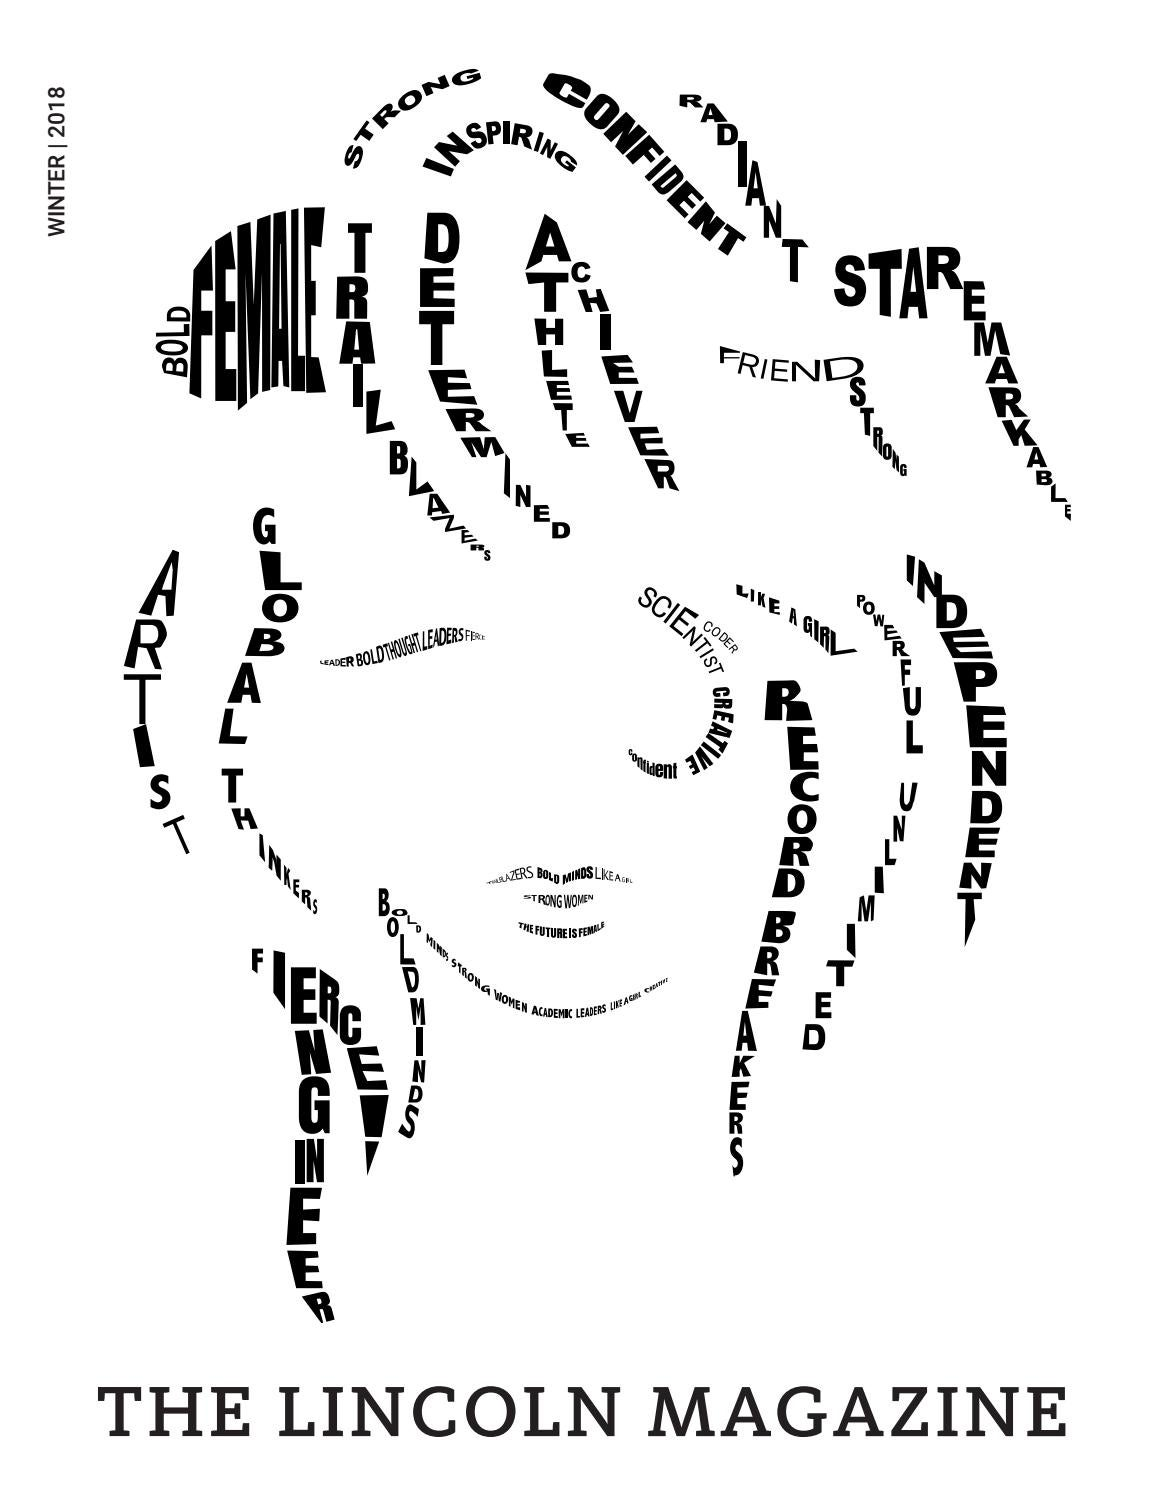 Biggest assholes in sports